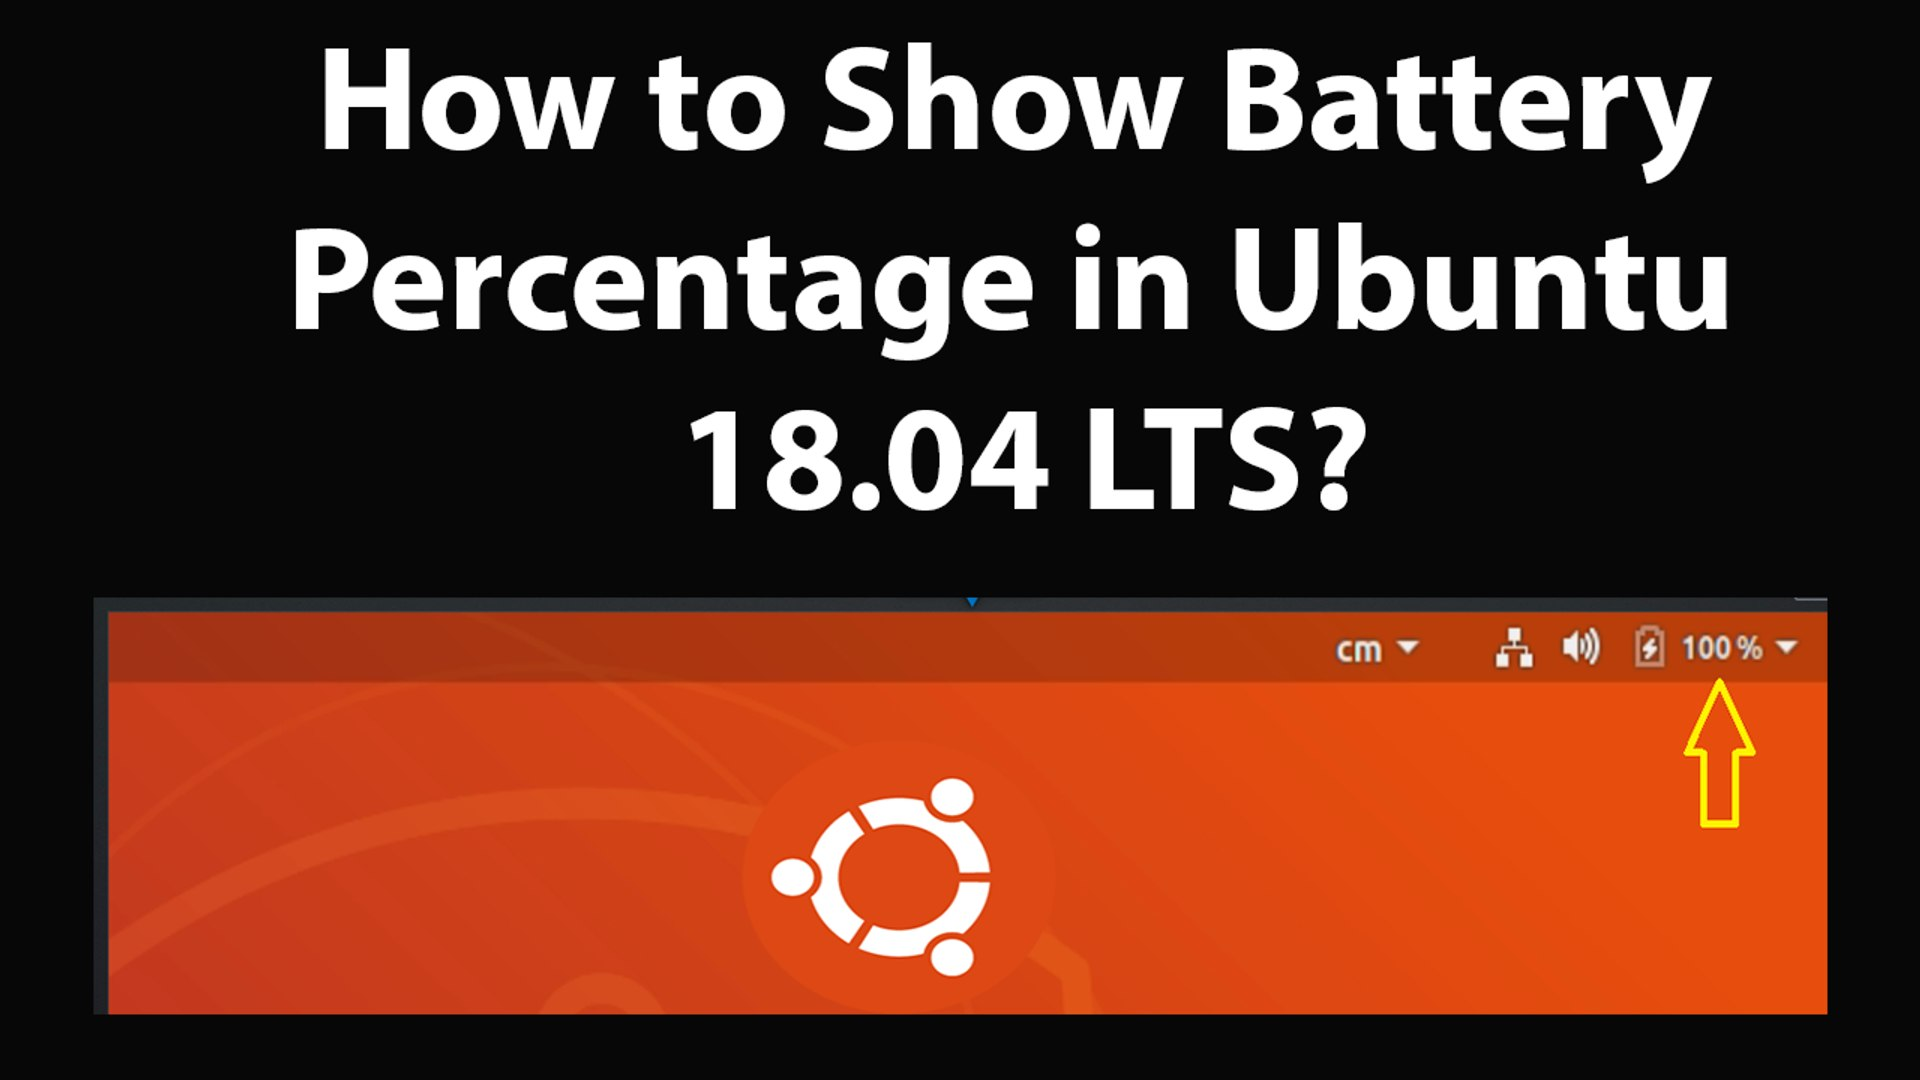 How to Show Battery Percentage in Ubuntu 18 04 LTS?